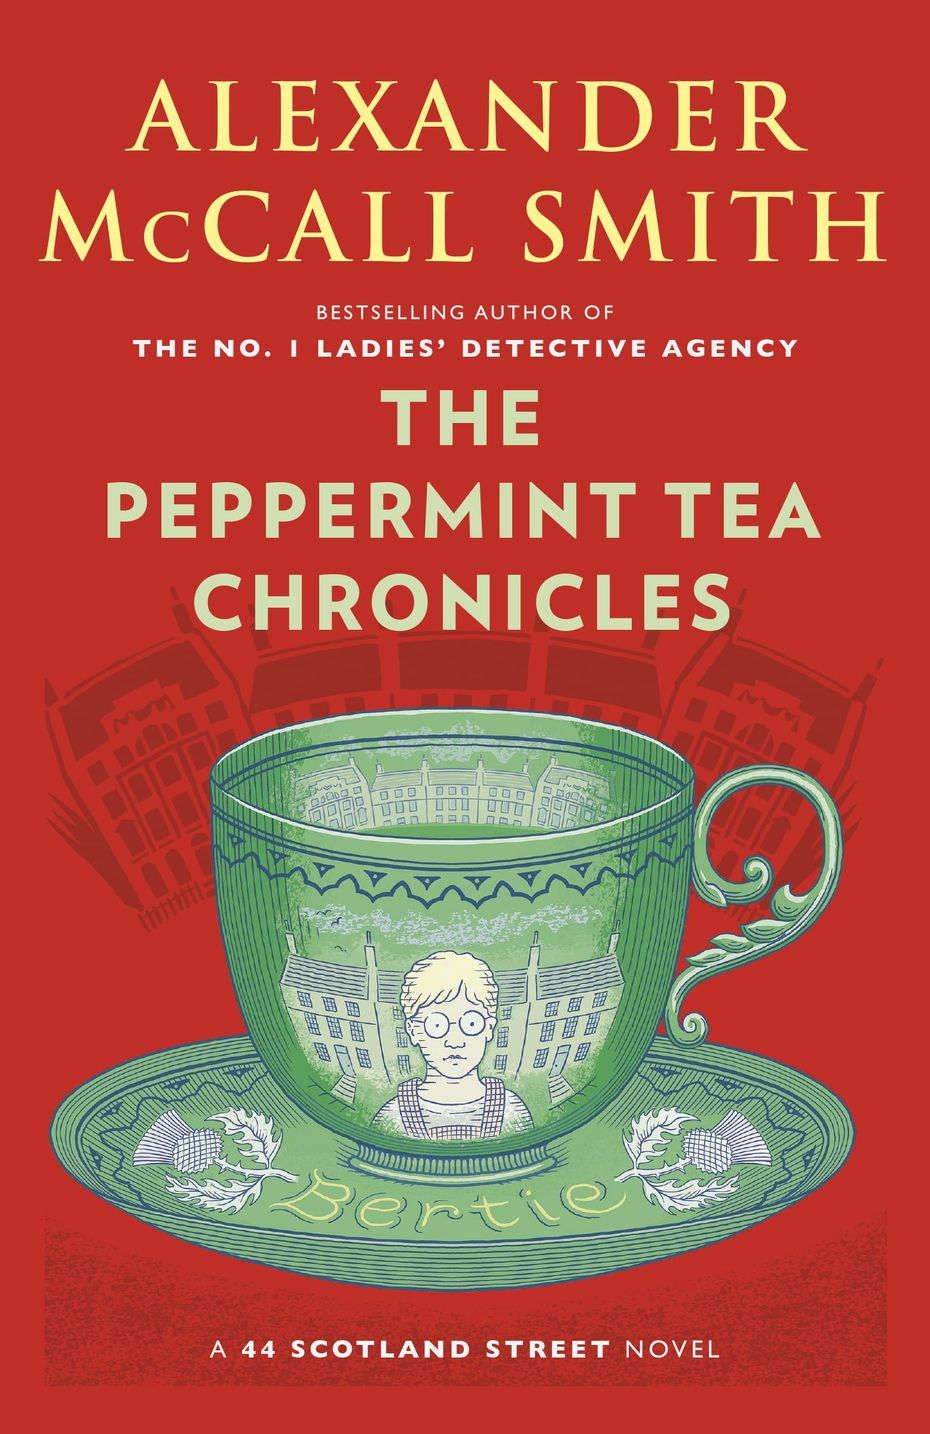 """The Peppermint Tea Chronicles"" is the fourth novel of the year for prolific writer Alexander McCall Smith."